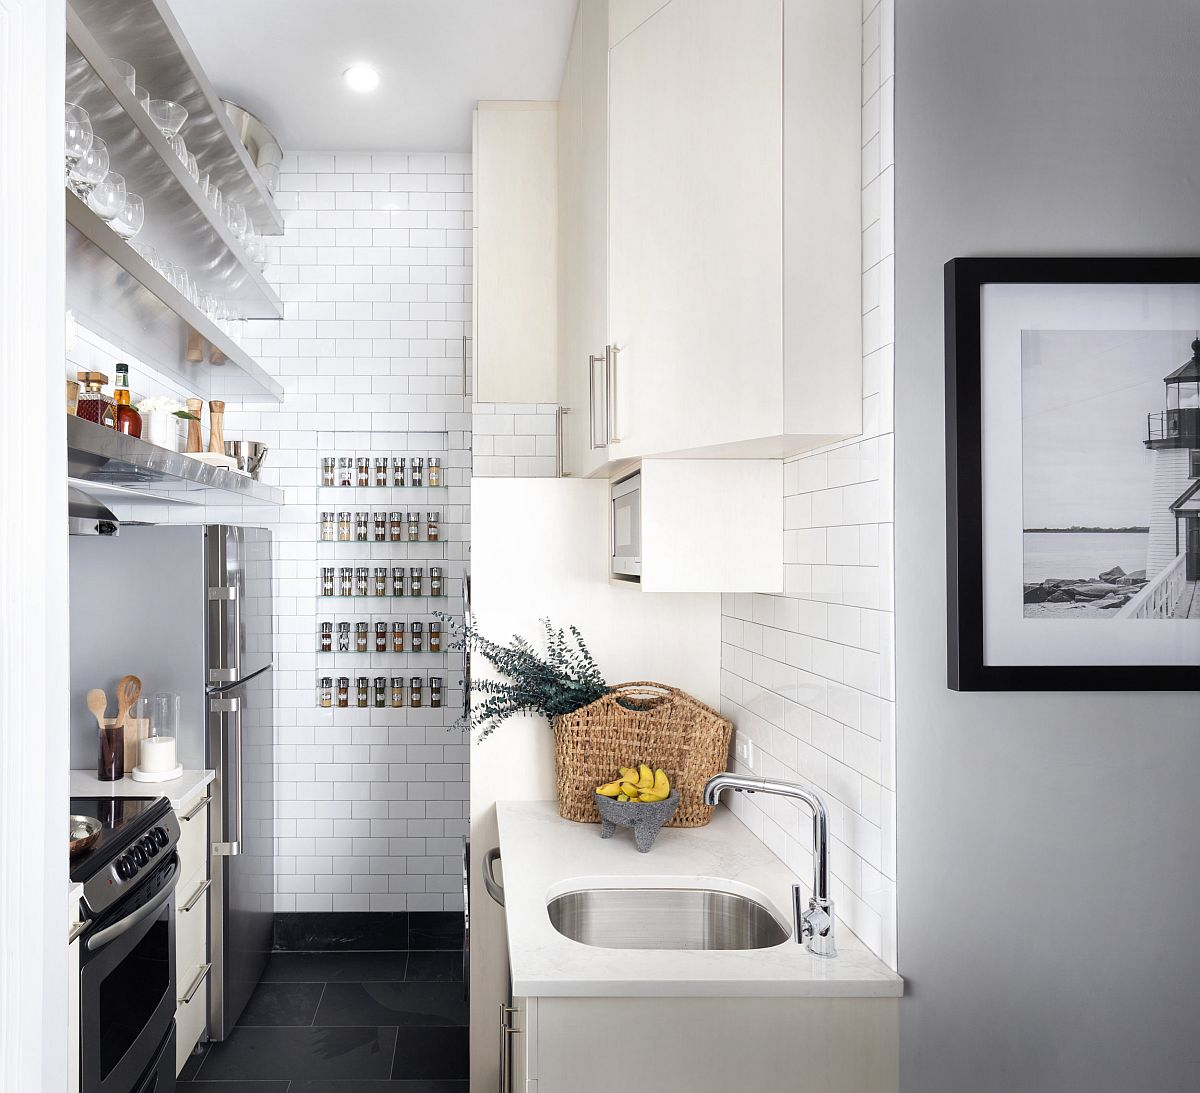 Making-most-of-the-vertical-space-inside-small-studio-apartment-kitchen-with-ample-shelving-72560